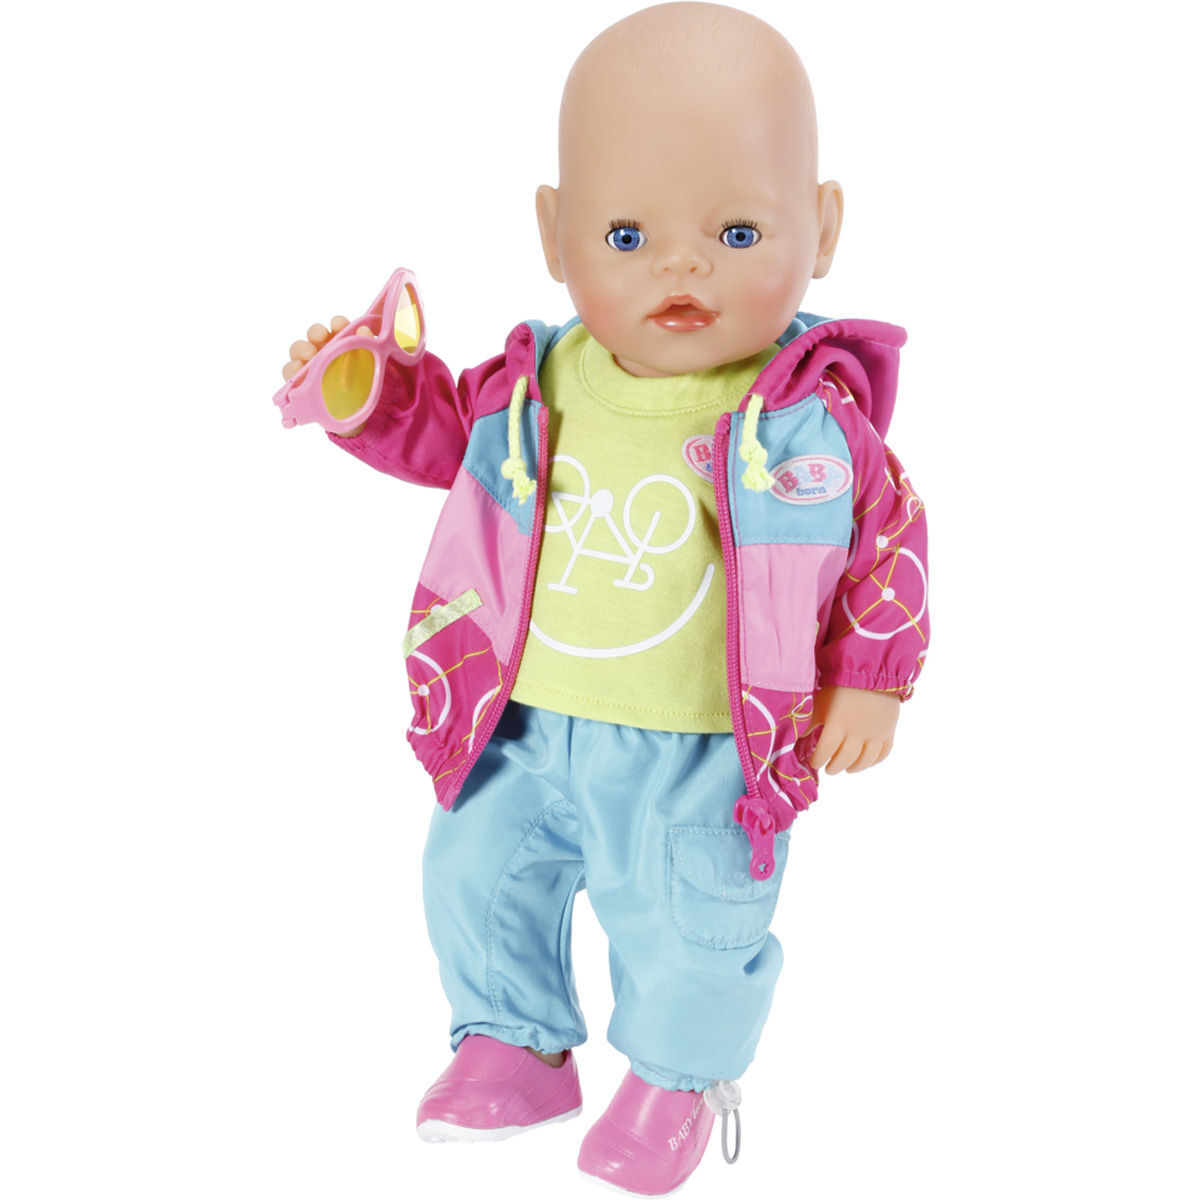 Shop online in Australia for original Baby Born and Baby Annabell dolls, interactive dolls, clothing and accessories. Interactive dolls available. Flat rate $15 Australian Shipping.